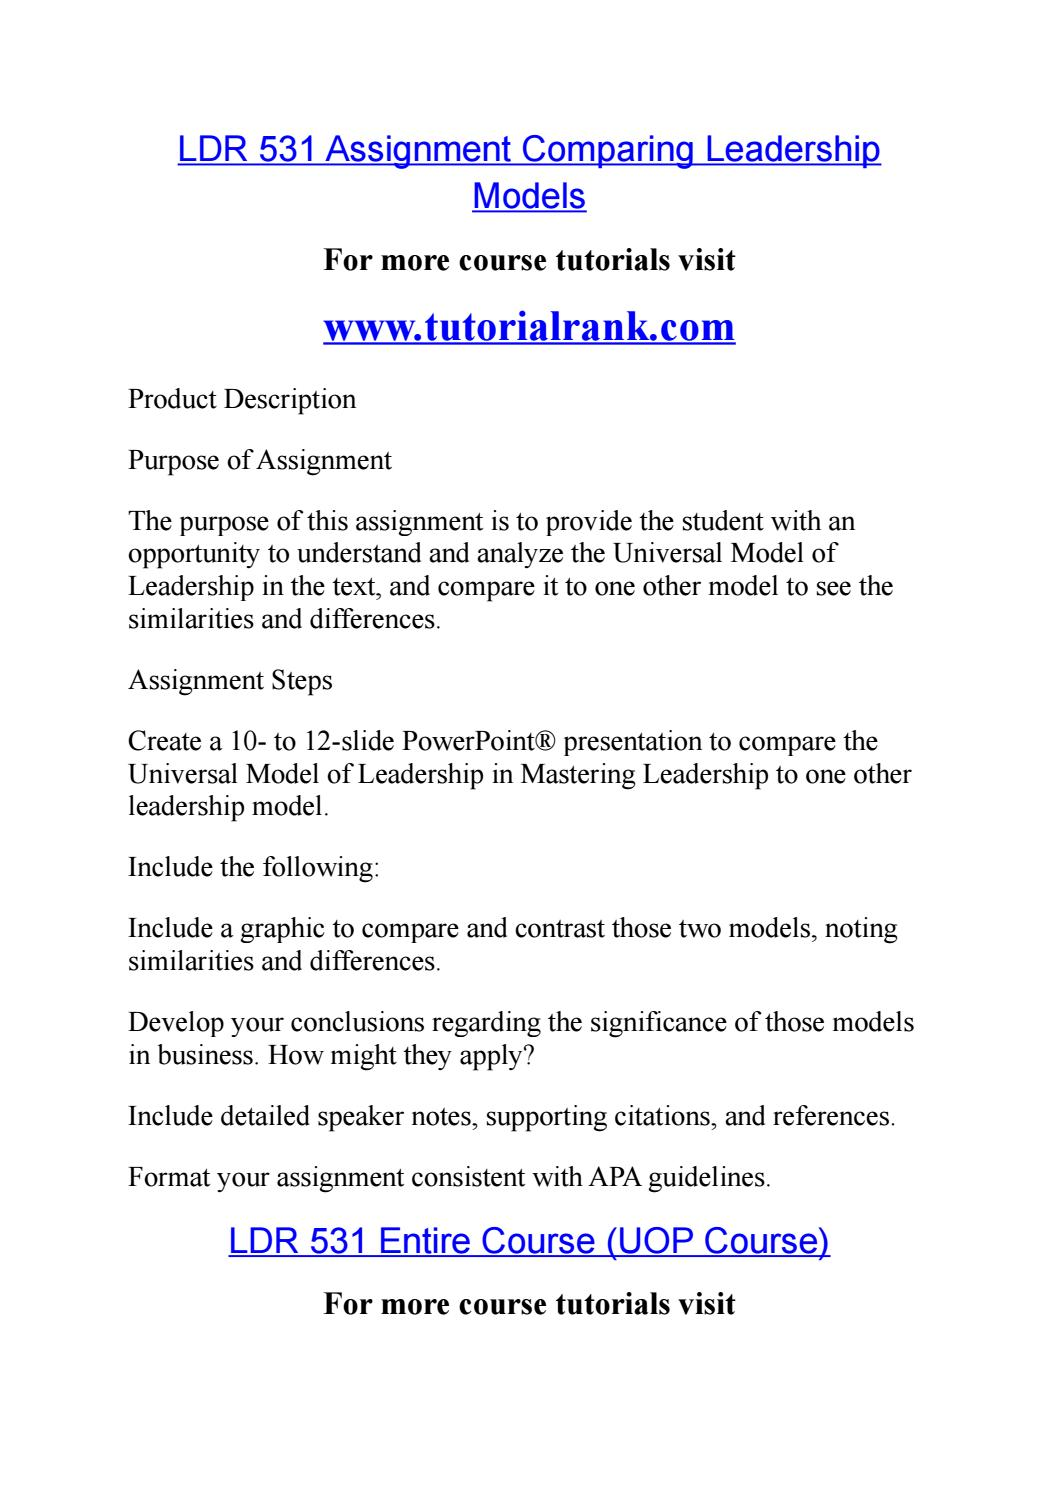 ACCT 504 Course Project-A Comparative Analysis of Kohl's Corporation and J.C. Penney Corporation